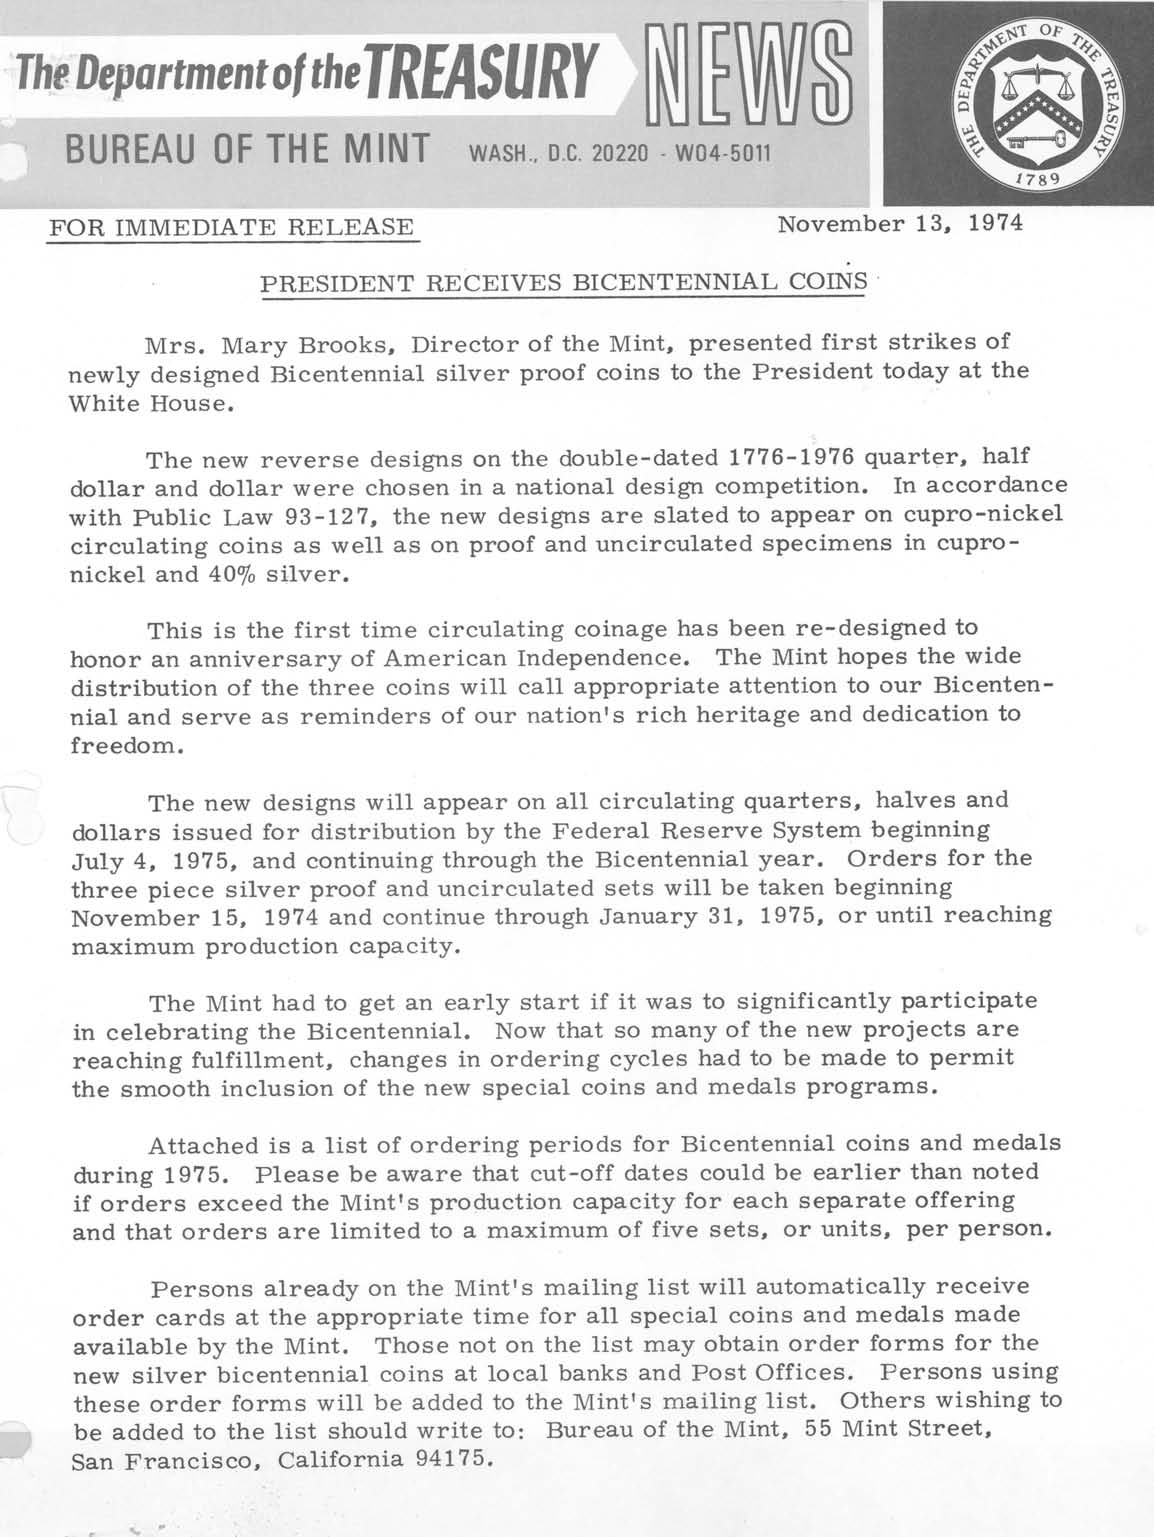 Historic Press Release: President Receives Bicentennial Coins, Page 1